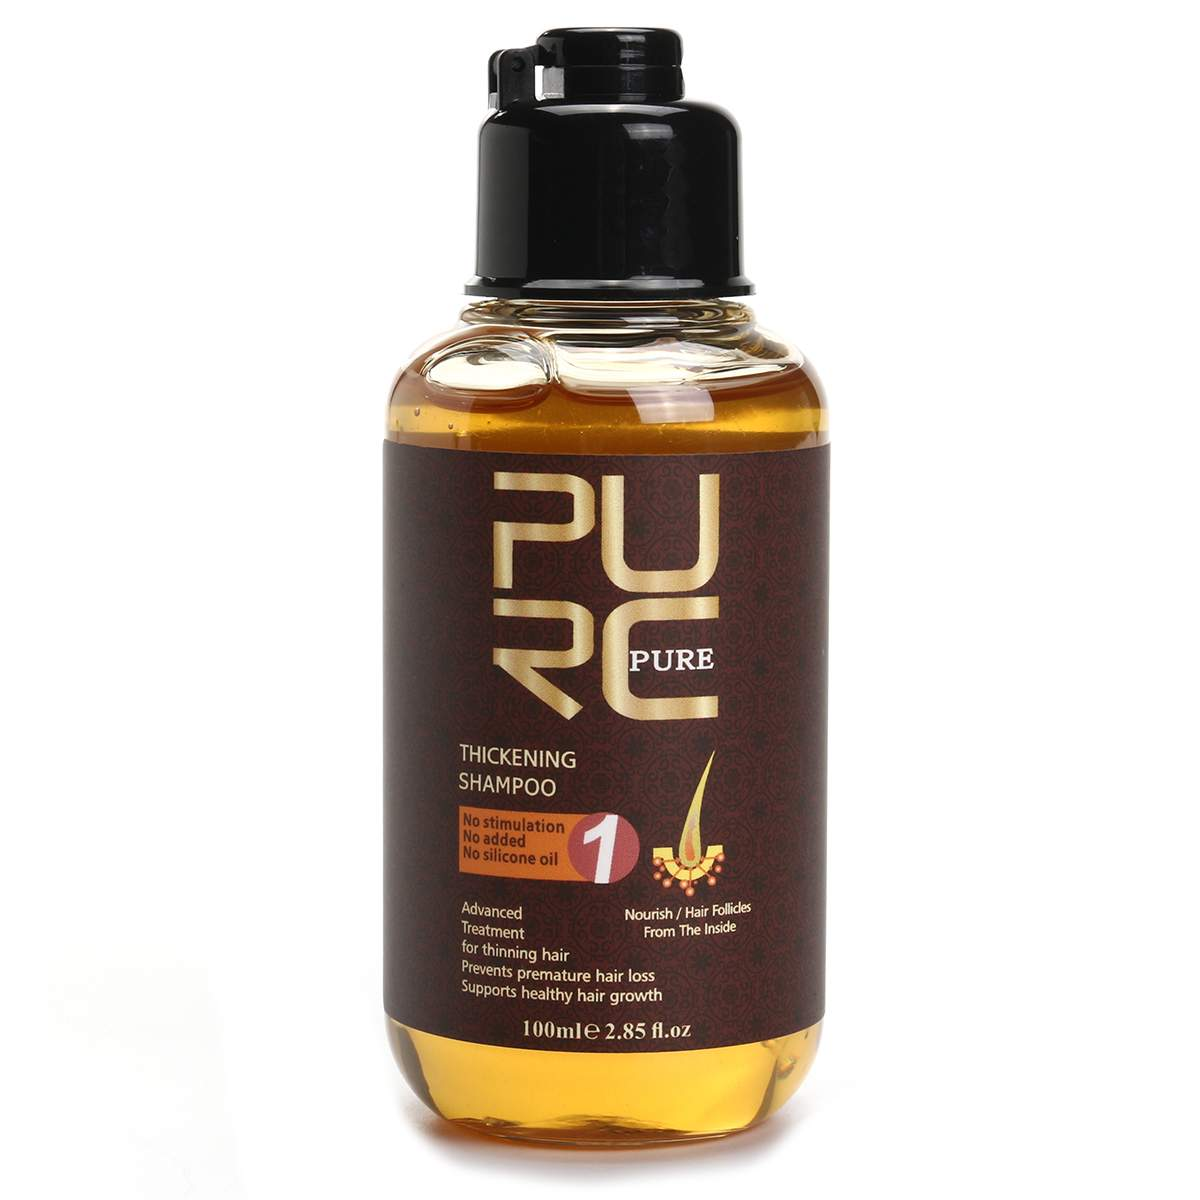 2-in-1 PURC Ginger Anti Hair Loss Shampoo and Conditioner Hair Care Thickening Shampoo Help Hair Growth Strengthener Thickener image